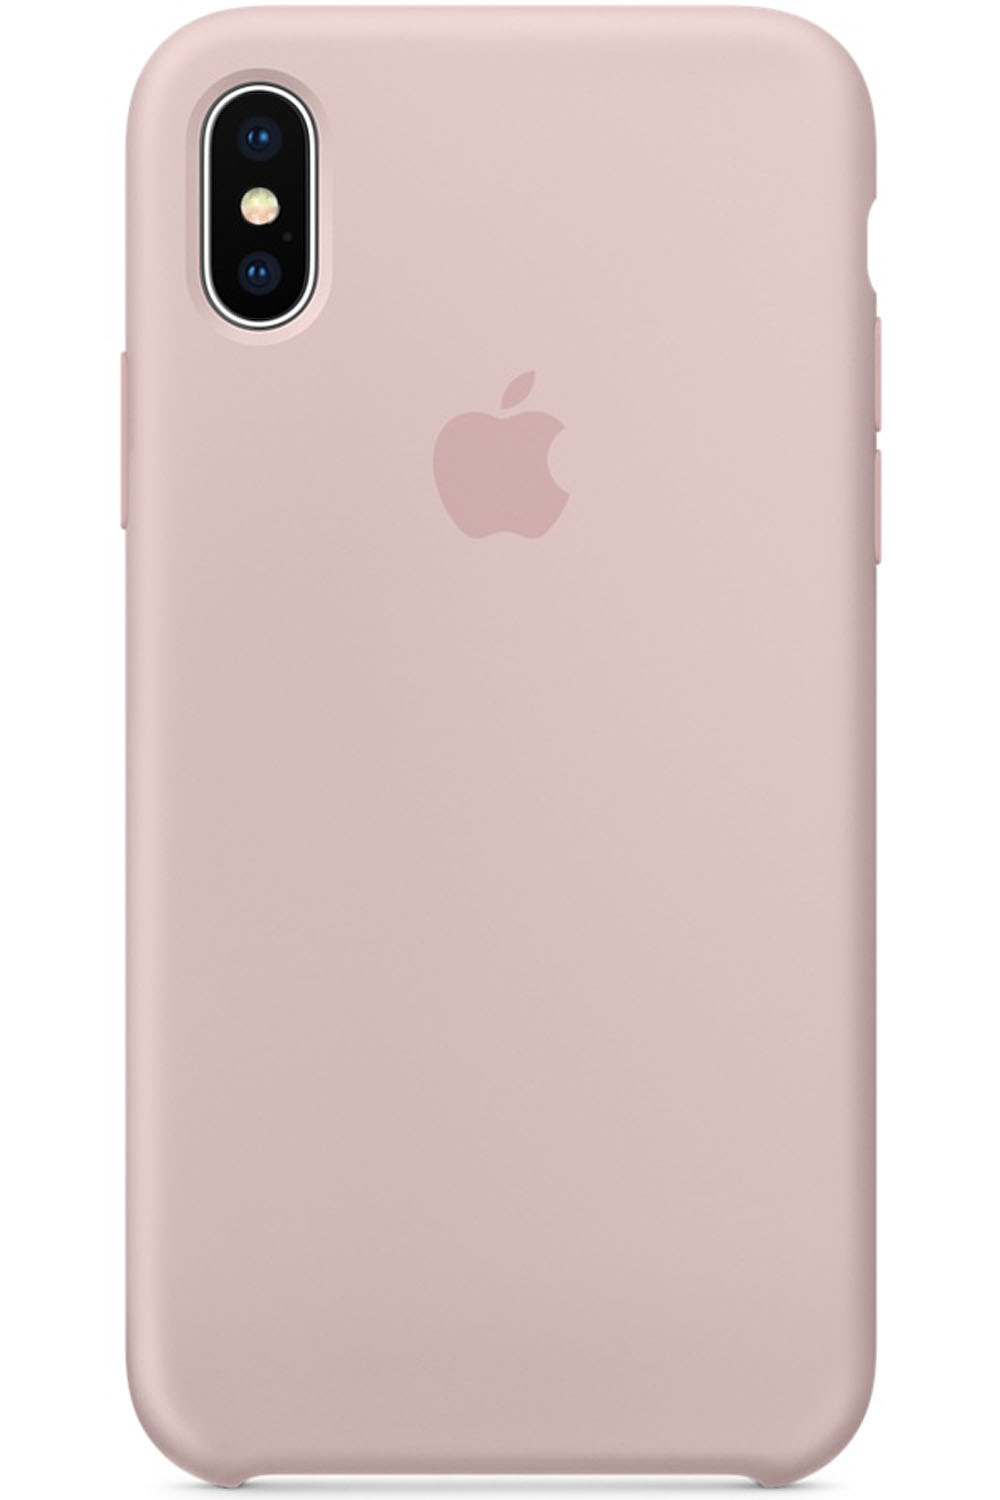 Apple iPhone X Pink Sand Silicone Case